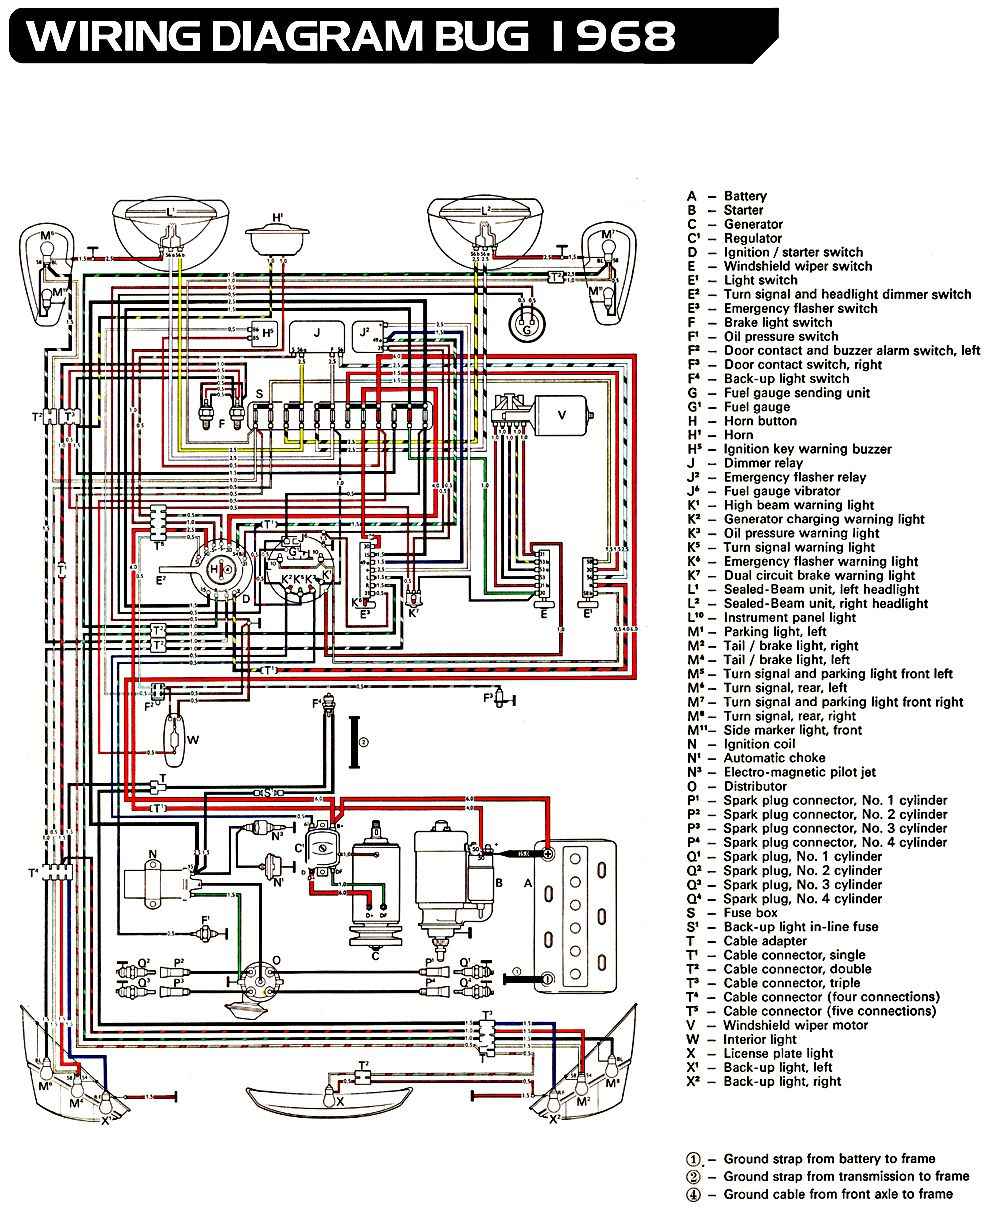 3a1908112d3826270ed5e3be362292bf vw bug ignition wiring diagram 73 vw wiring diagram free 1973 vw beetle wiring diagram at n-0.co